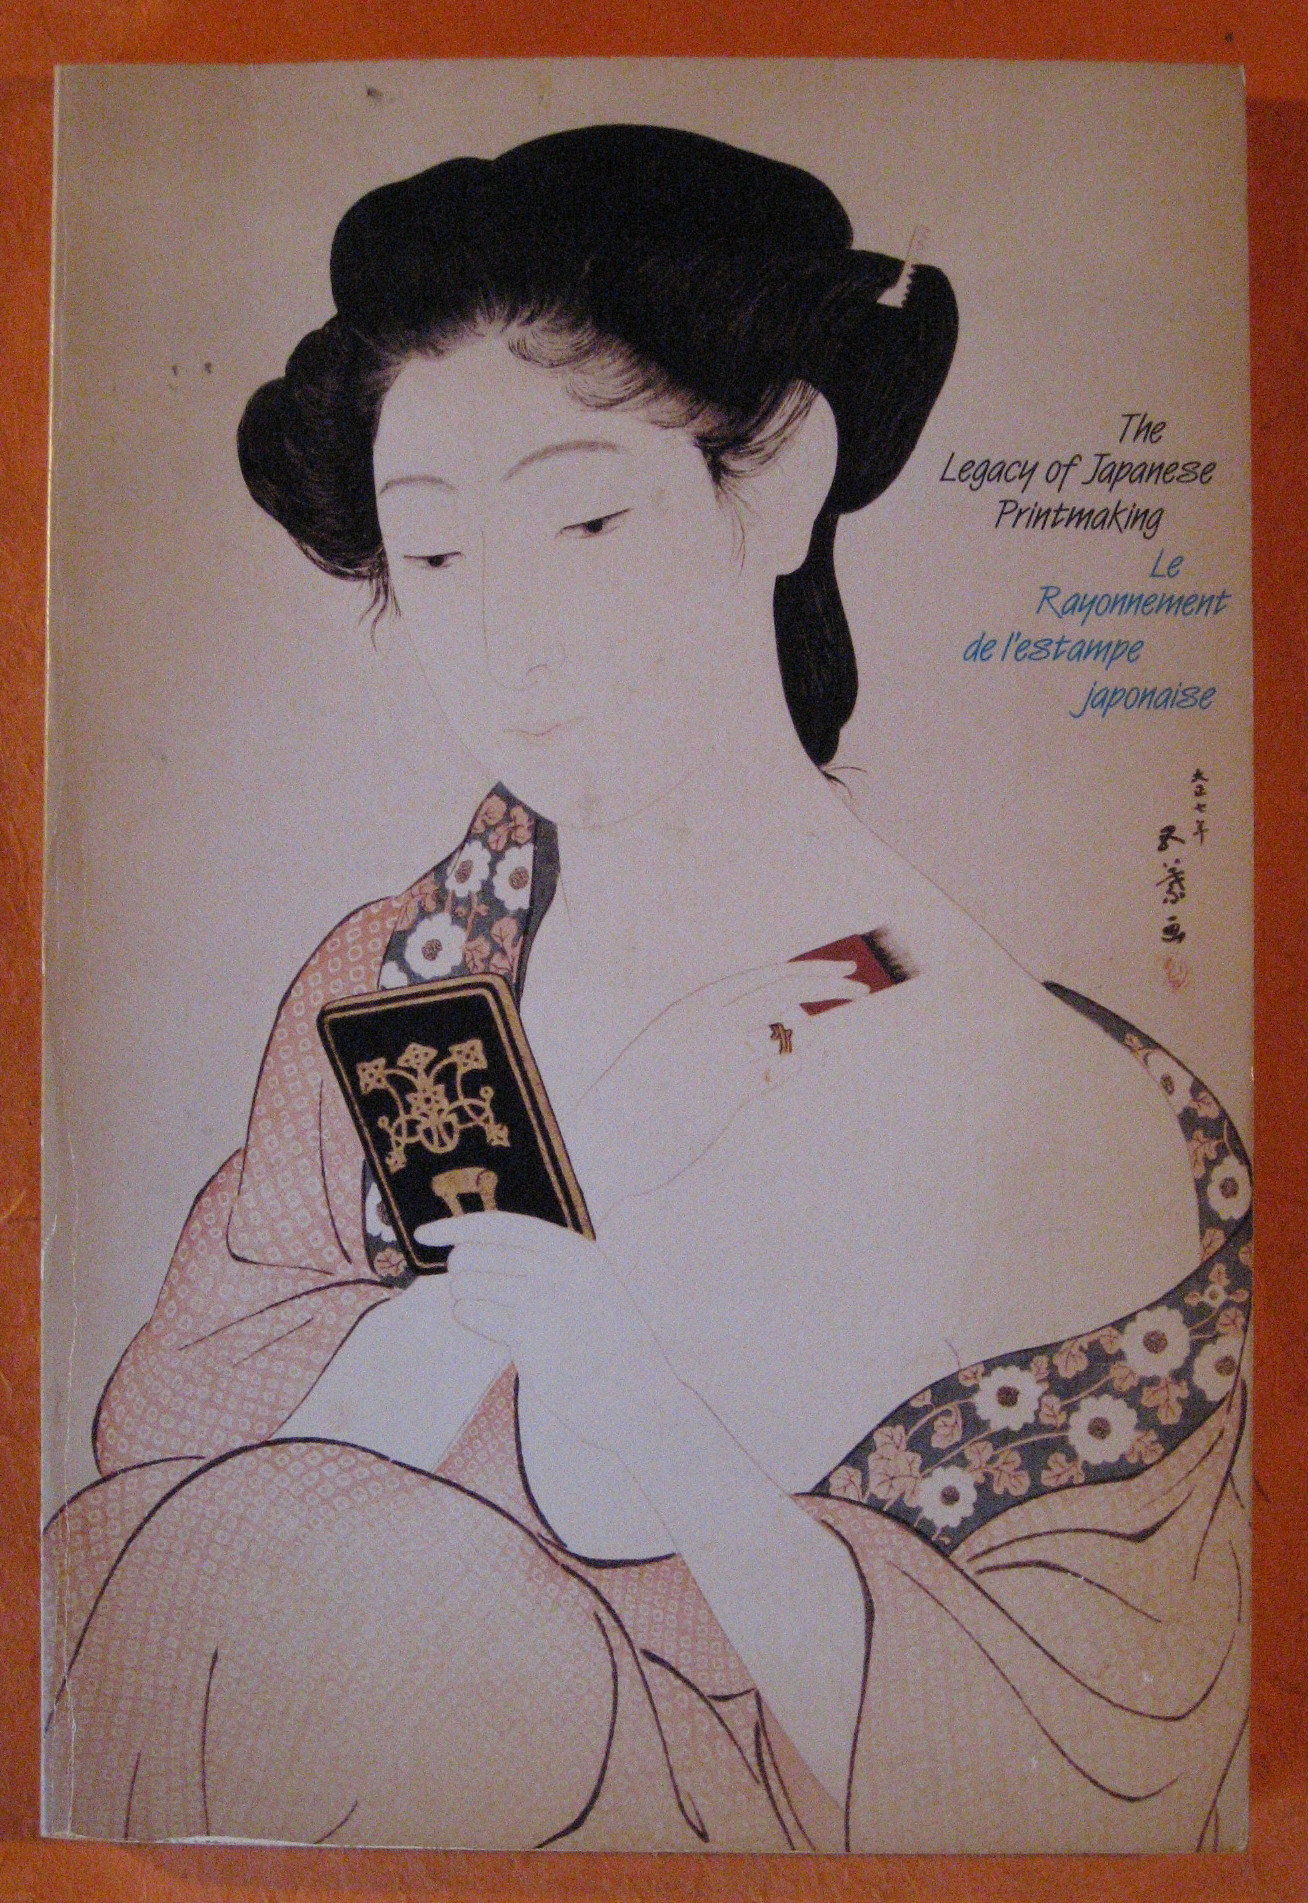 The Legacy of Japanese Printmaking / Le rayonnement de l'estampe Japonaise, Till, Barry